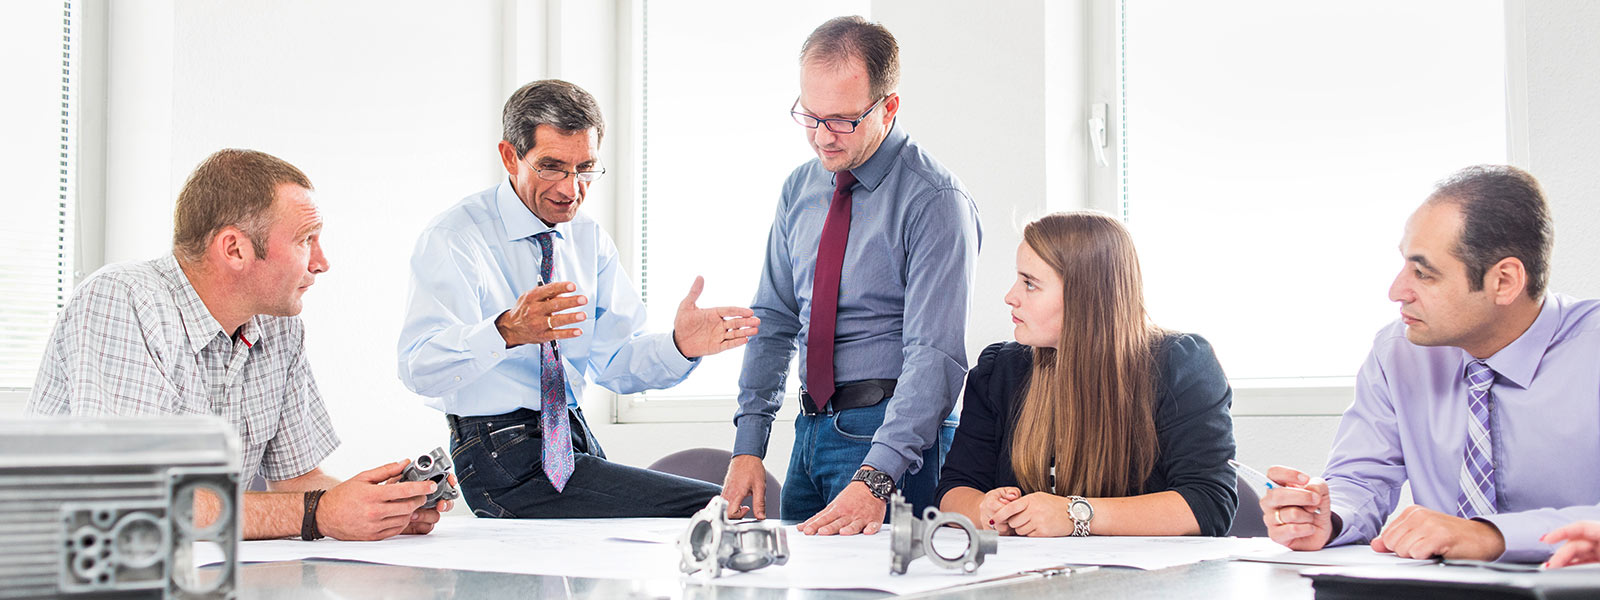 Five employees in a team meeting